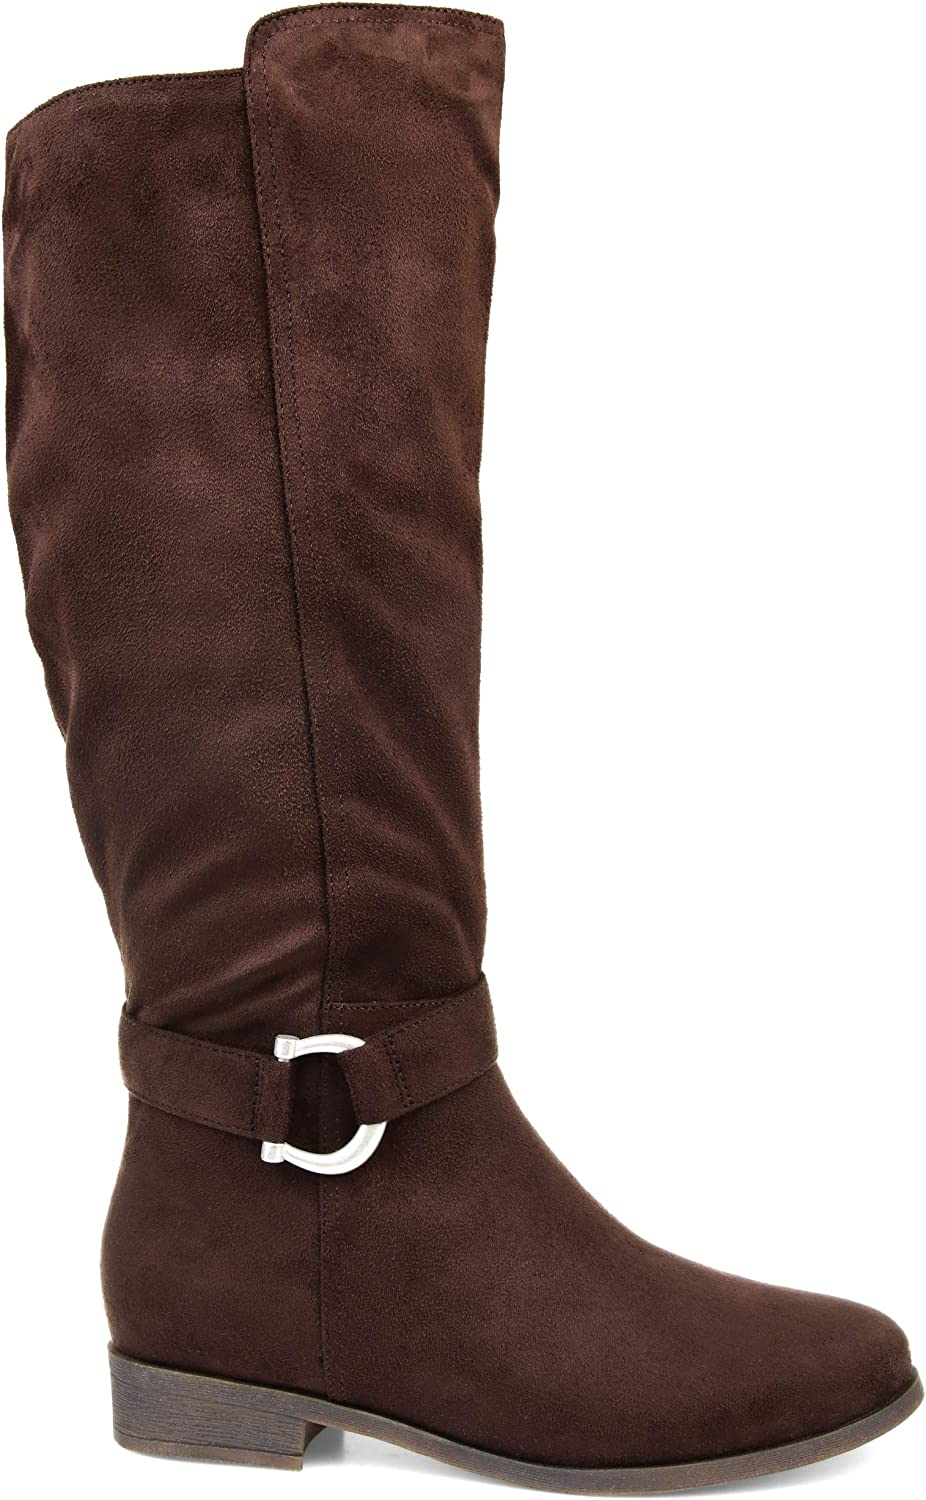 shopping safety Comfort by Brinley Co. Classic Riding Boot Womens